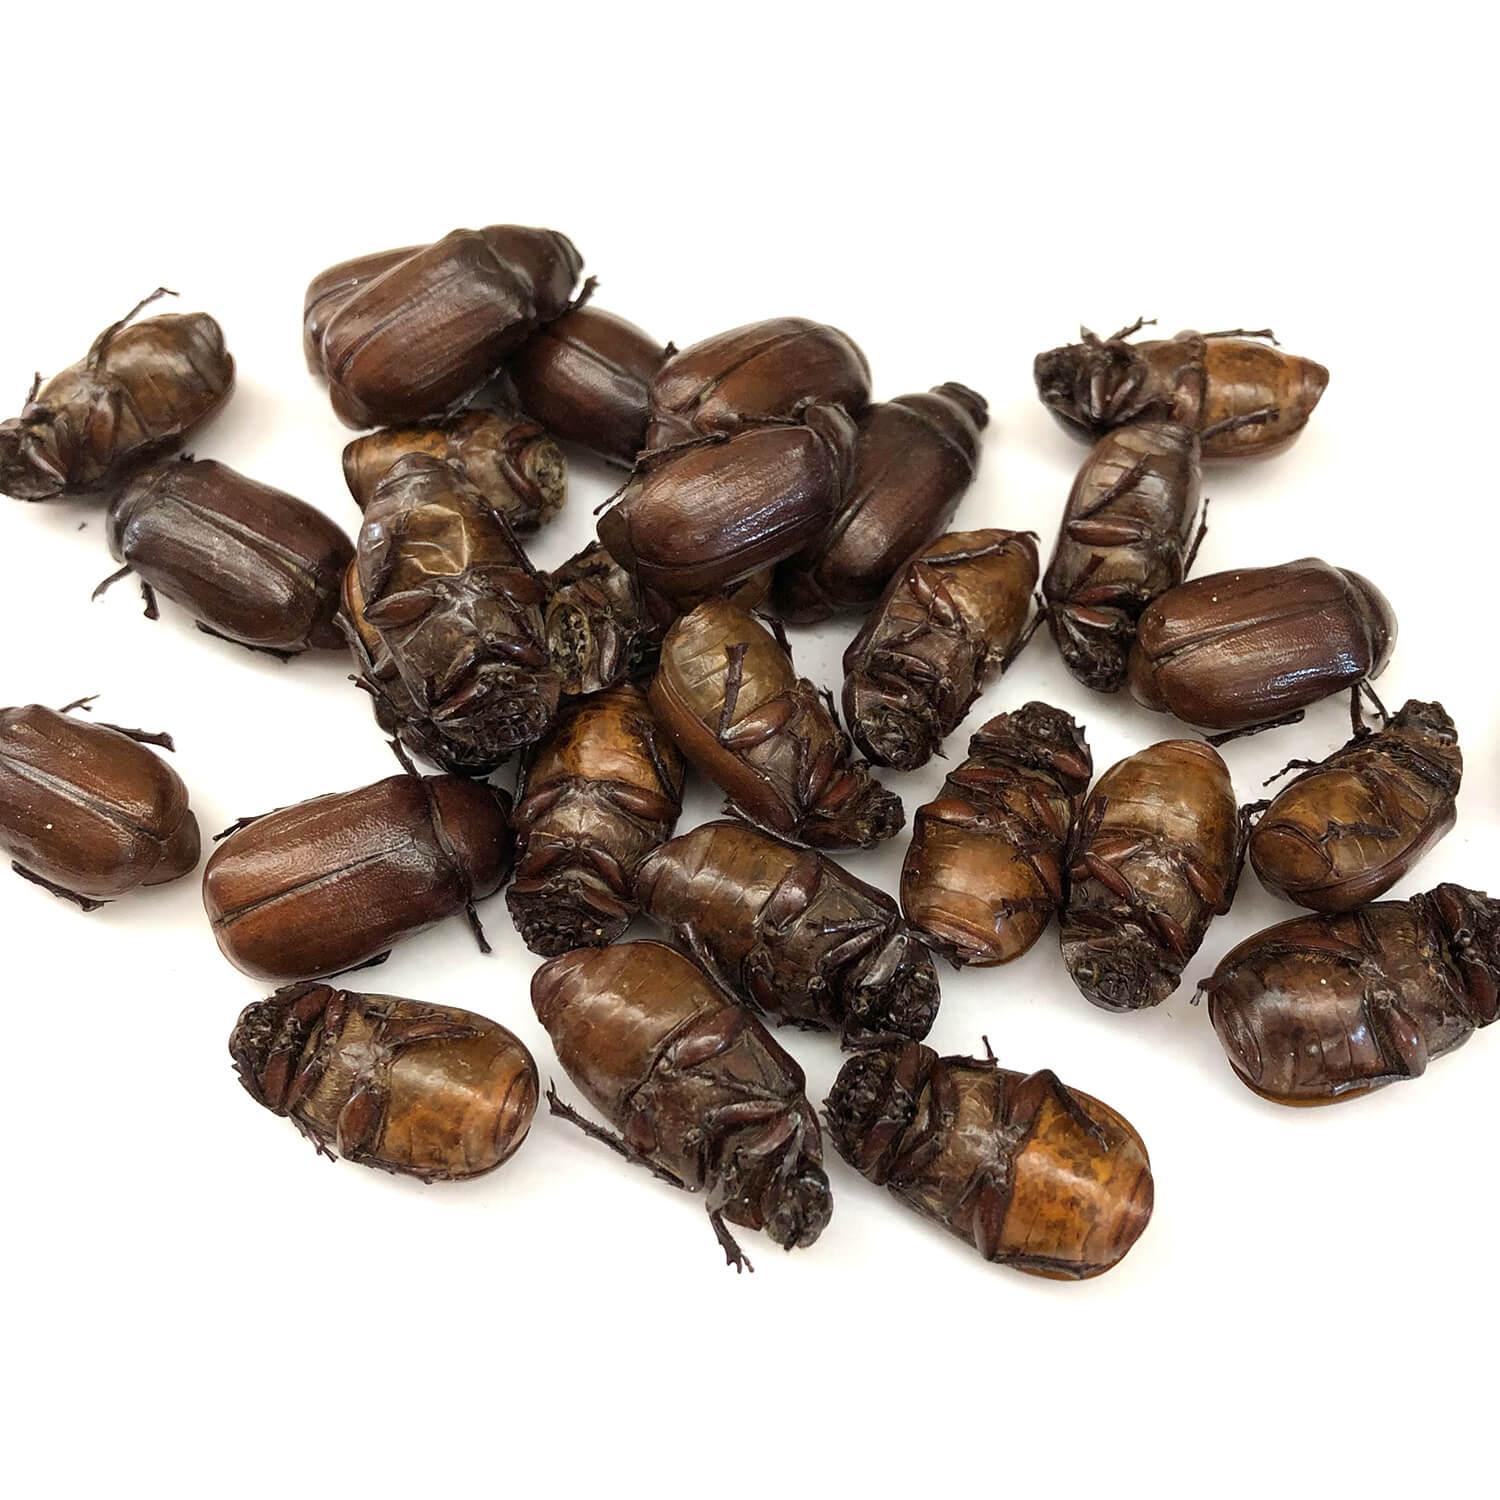 Small June Beetles 15g (コガネムシ15g)